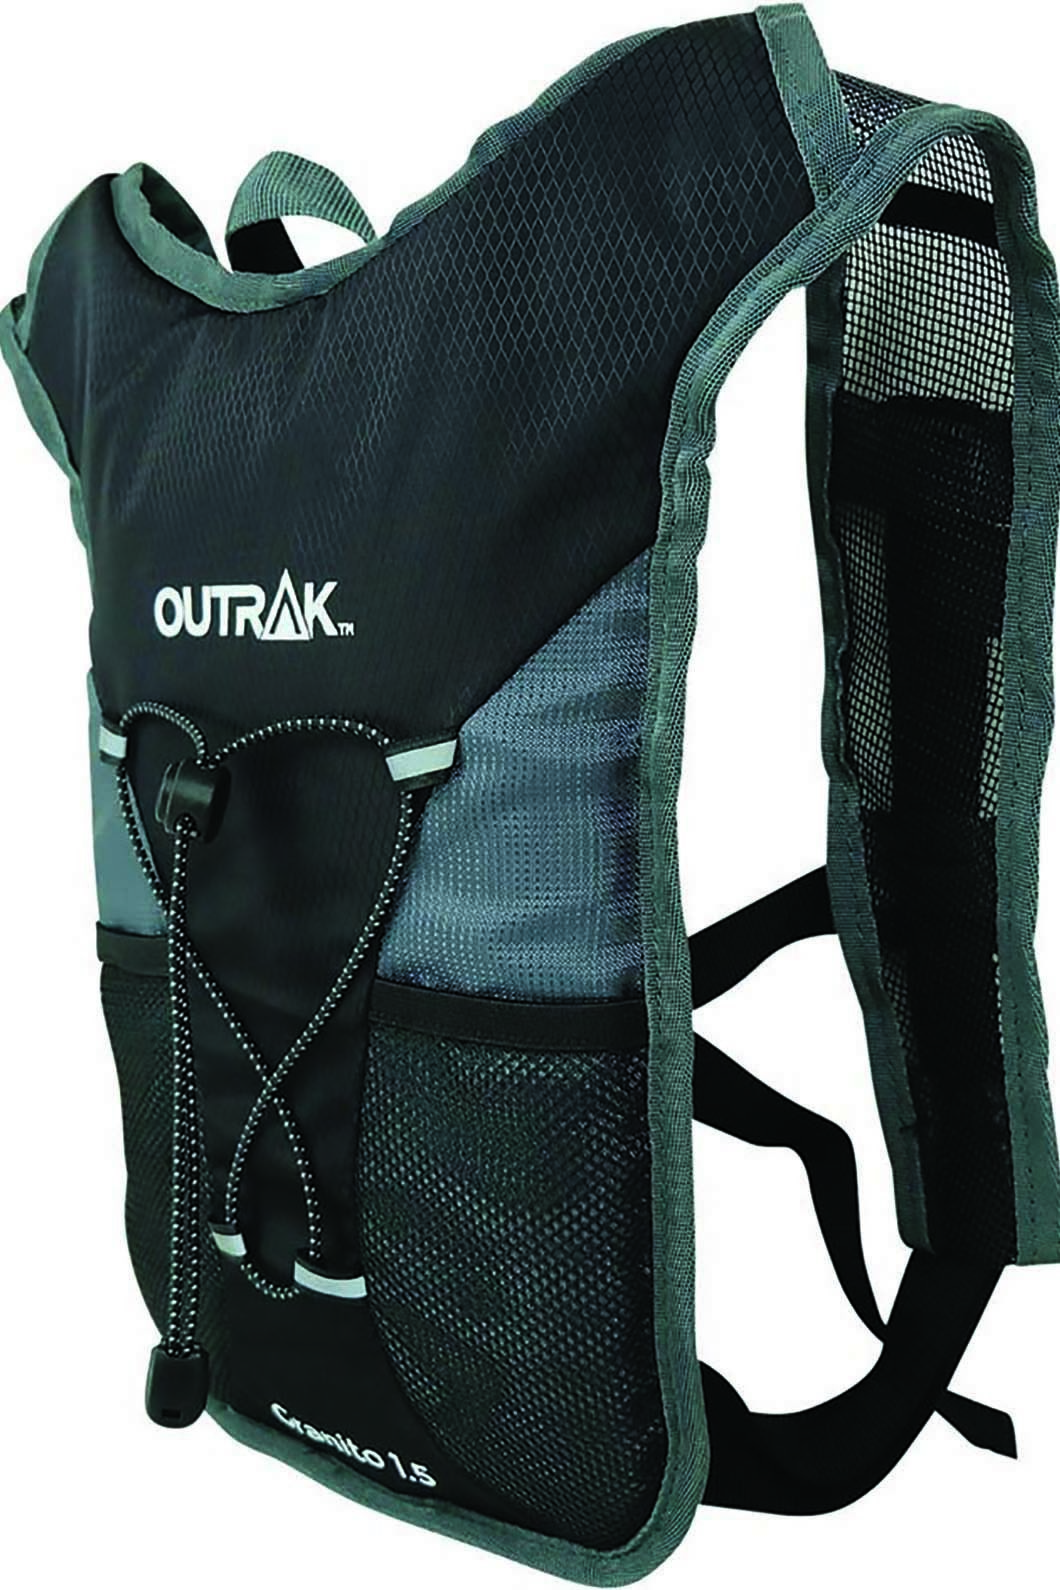 Outrak Granito Hydration Pack 1LL, None, hi-res